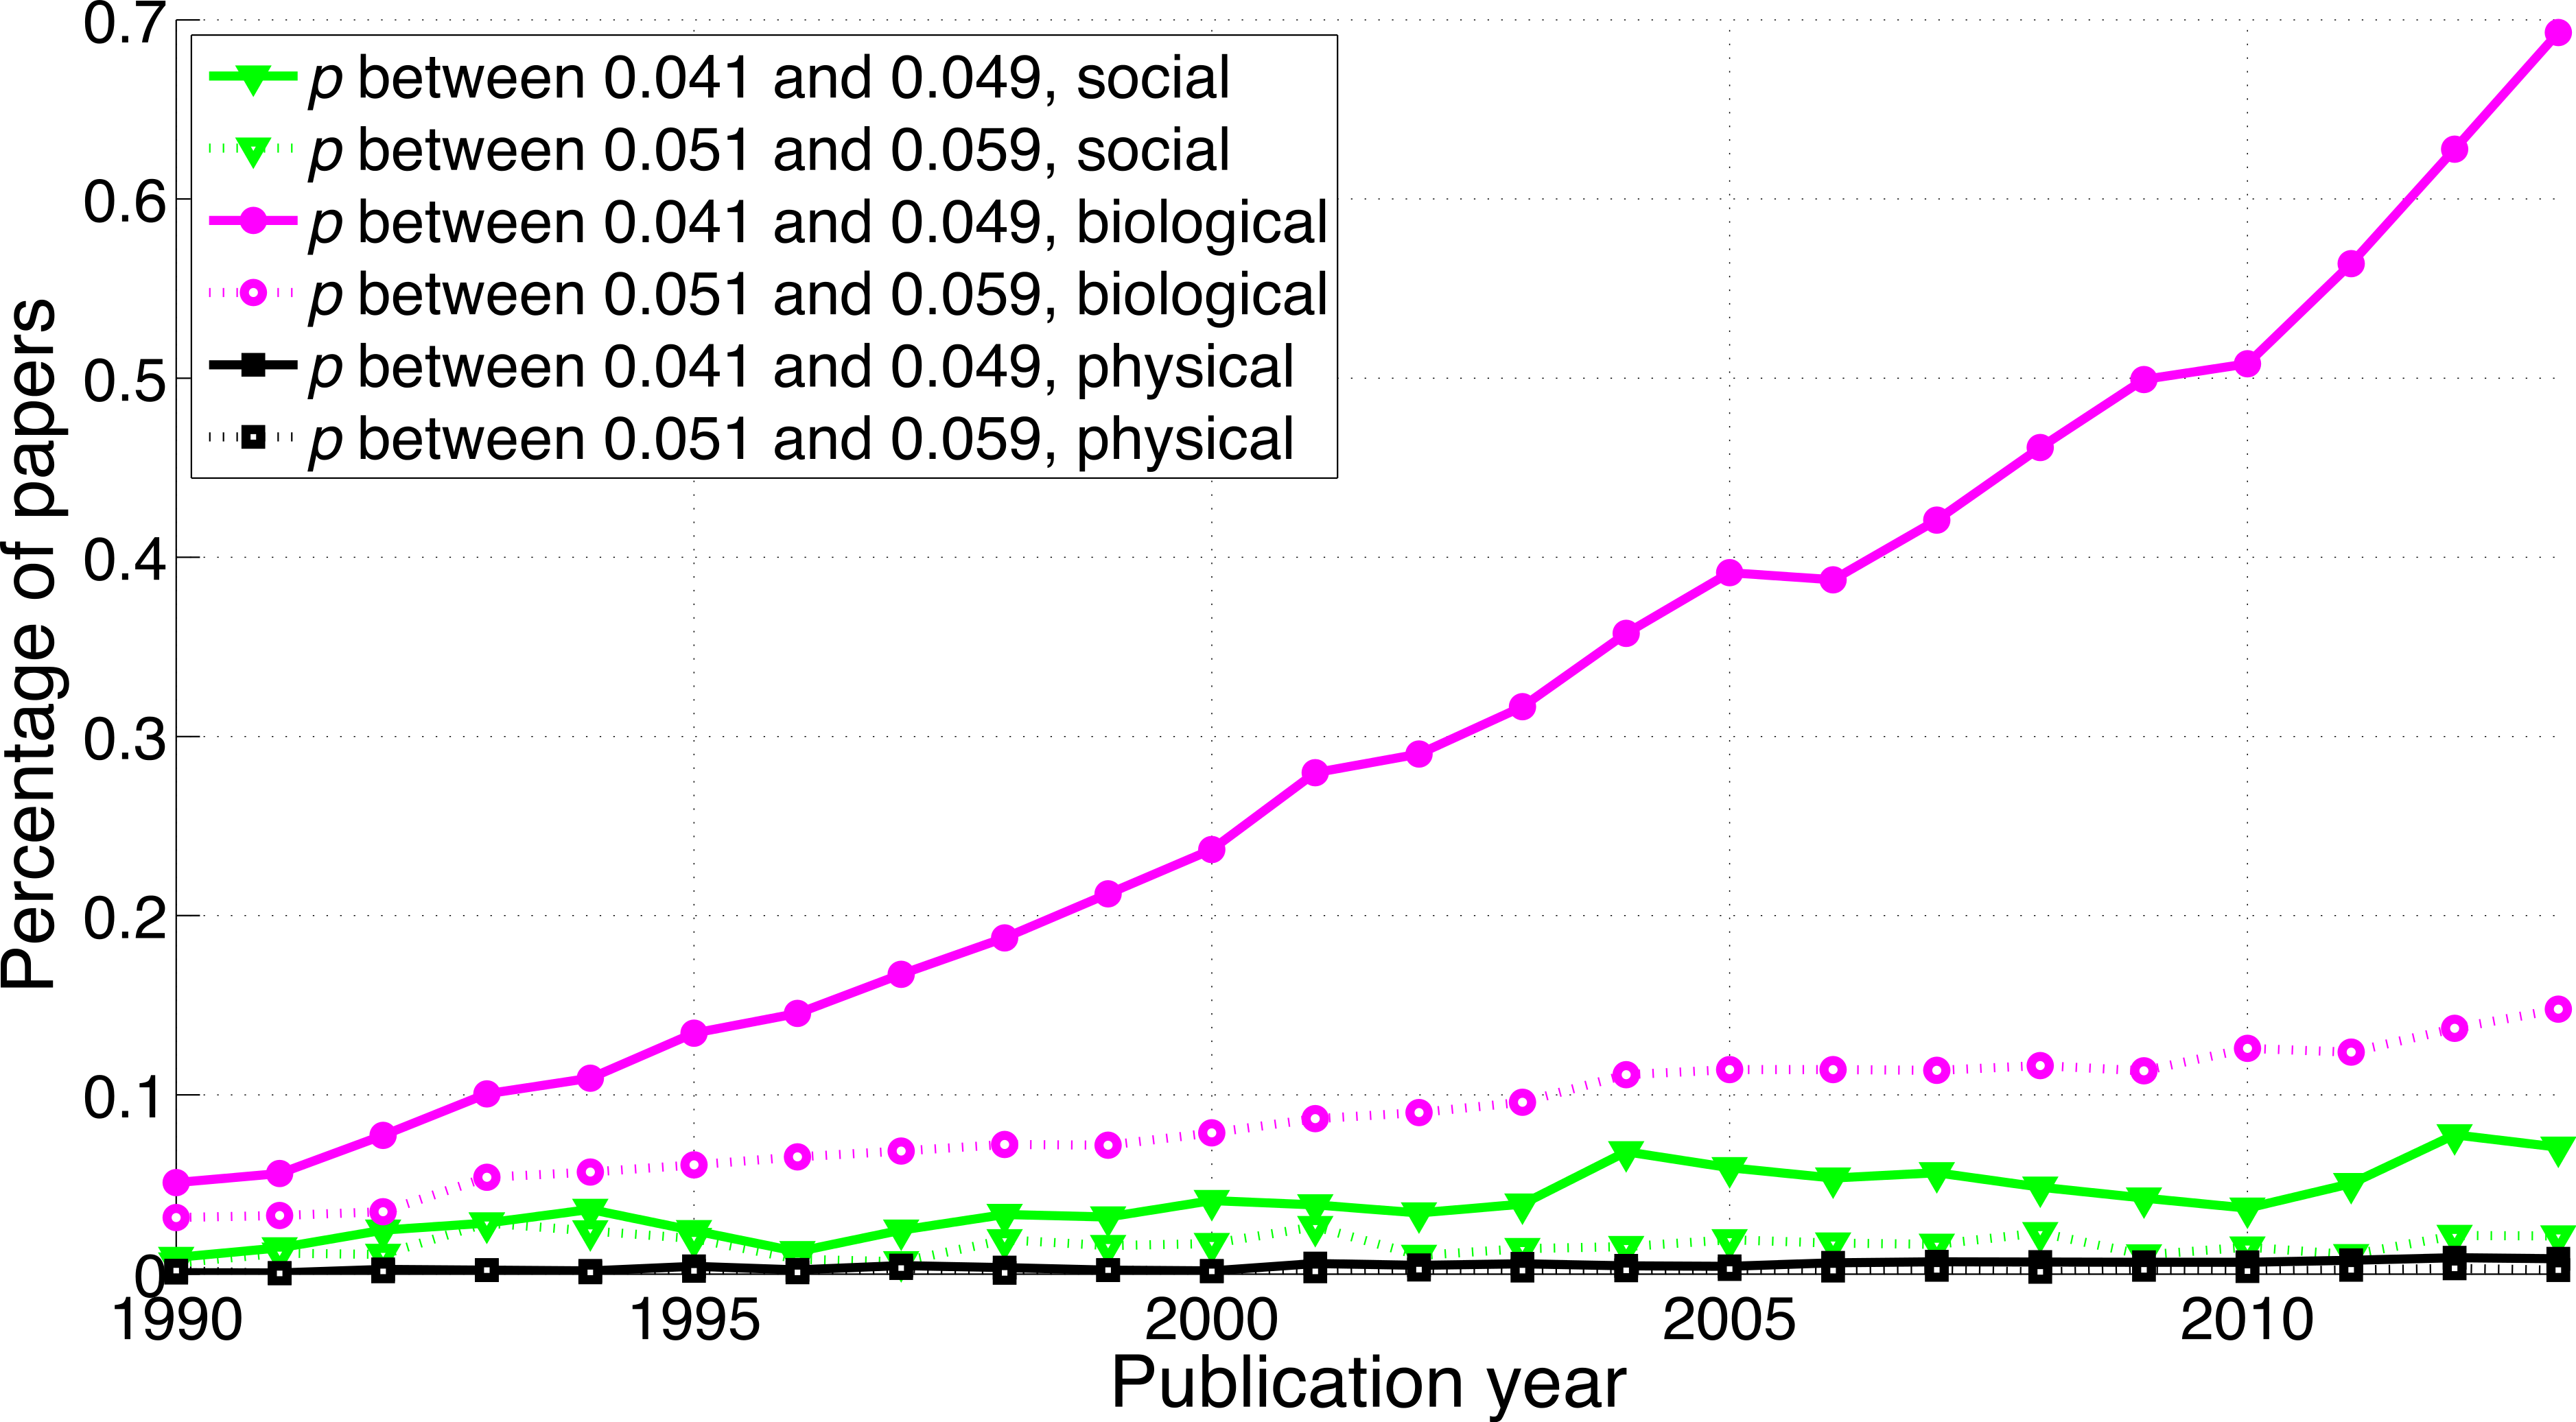 A surge of p-values between 0.041 and 0.049 in recent ...